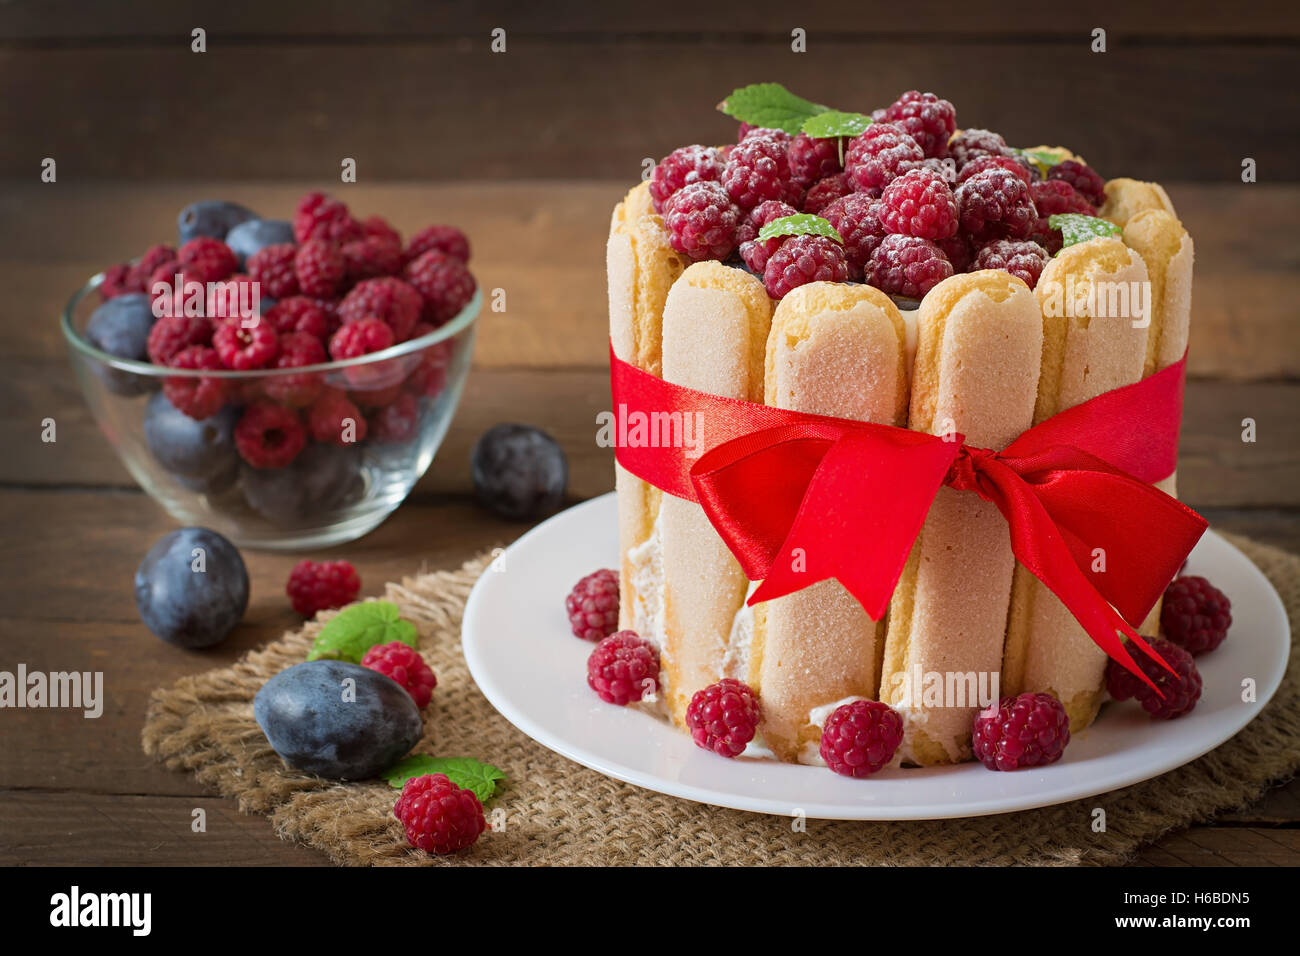 Cake 'Charlotte ' with raspberries and plums. - Stock Image